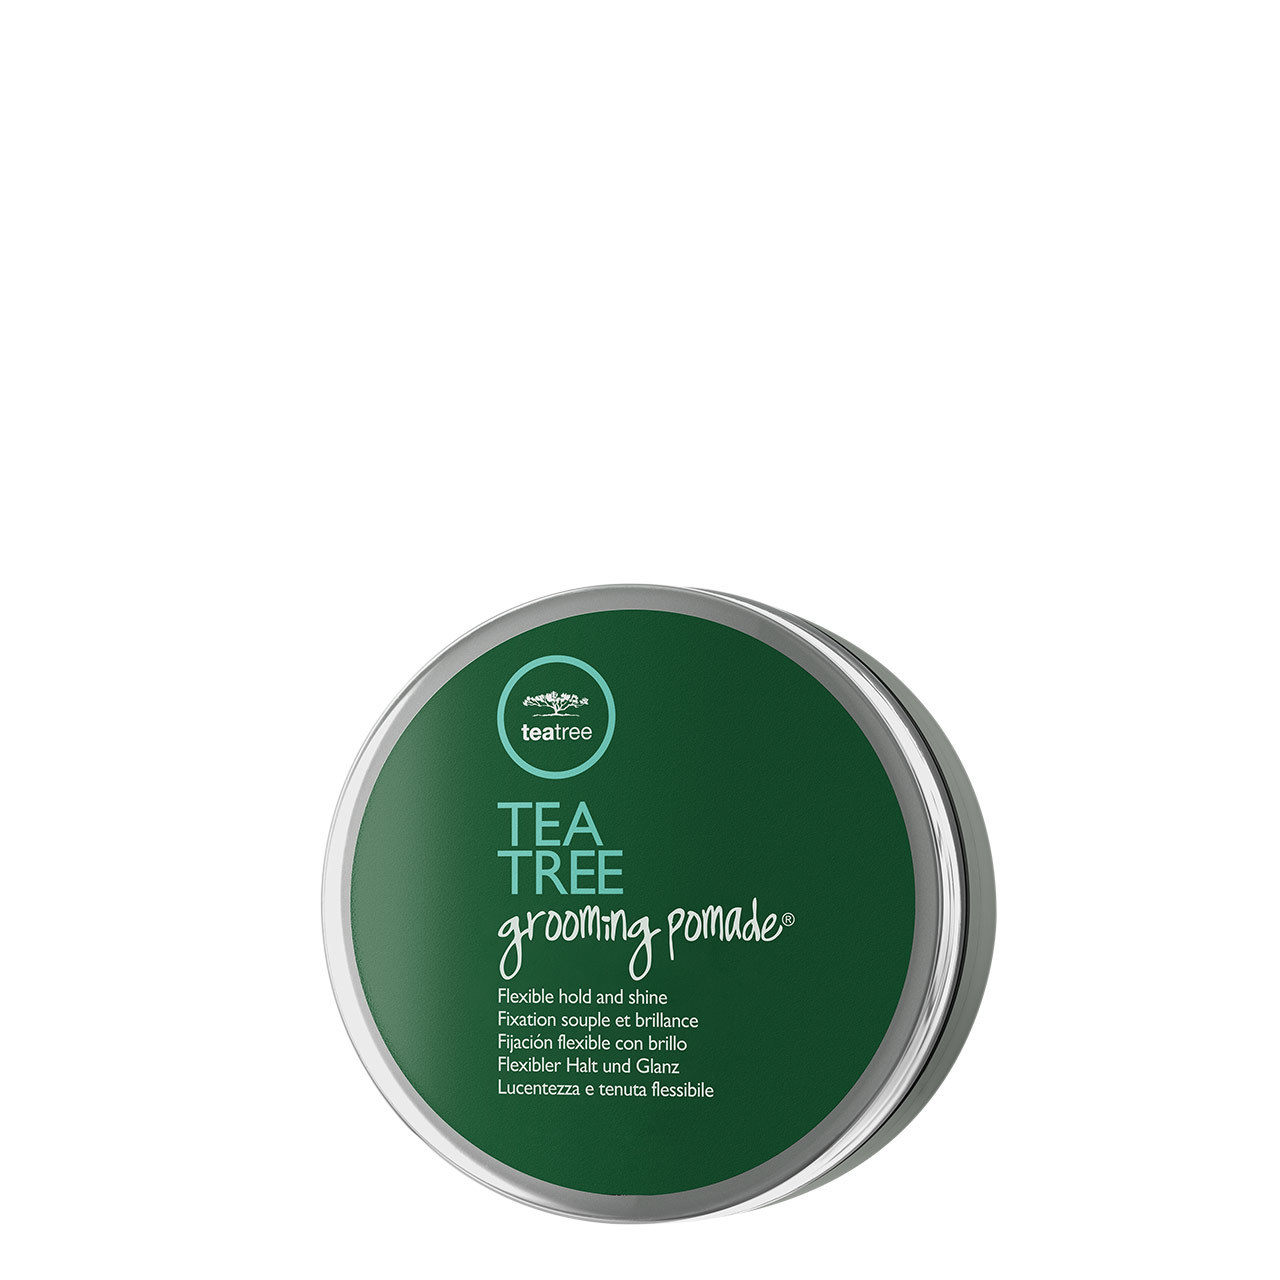 Tea Tree Grooming Pomade by Paul Mitchell